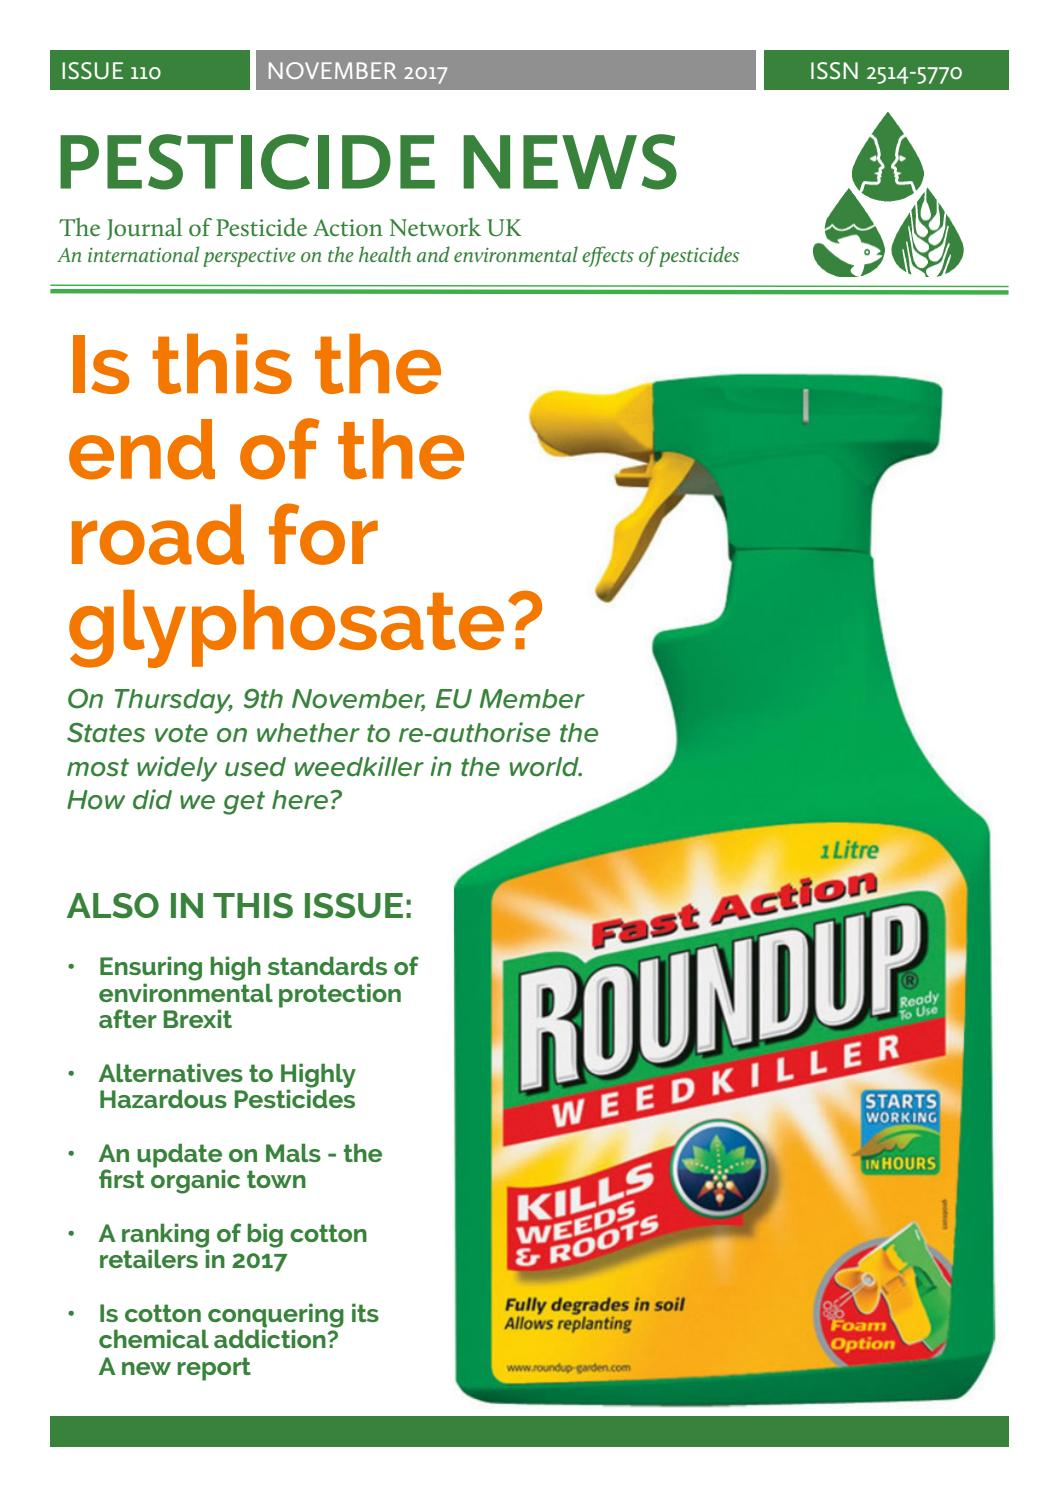 Pesticide News - Issue 110 by PAN UK - Issuu